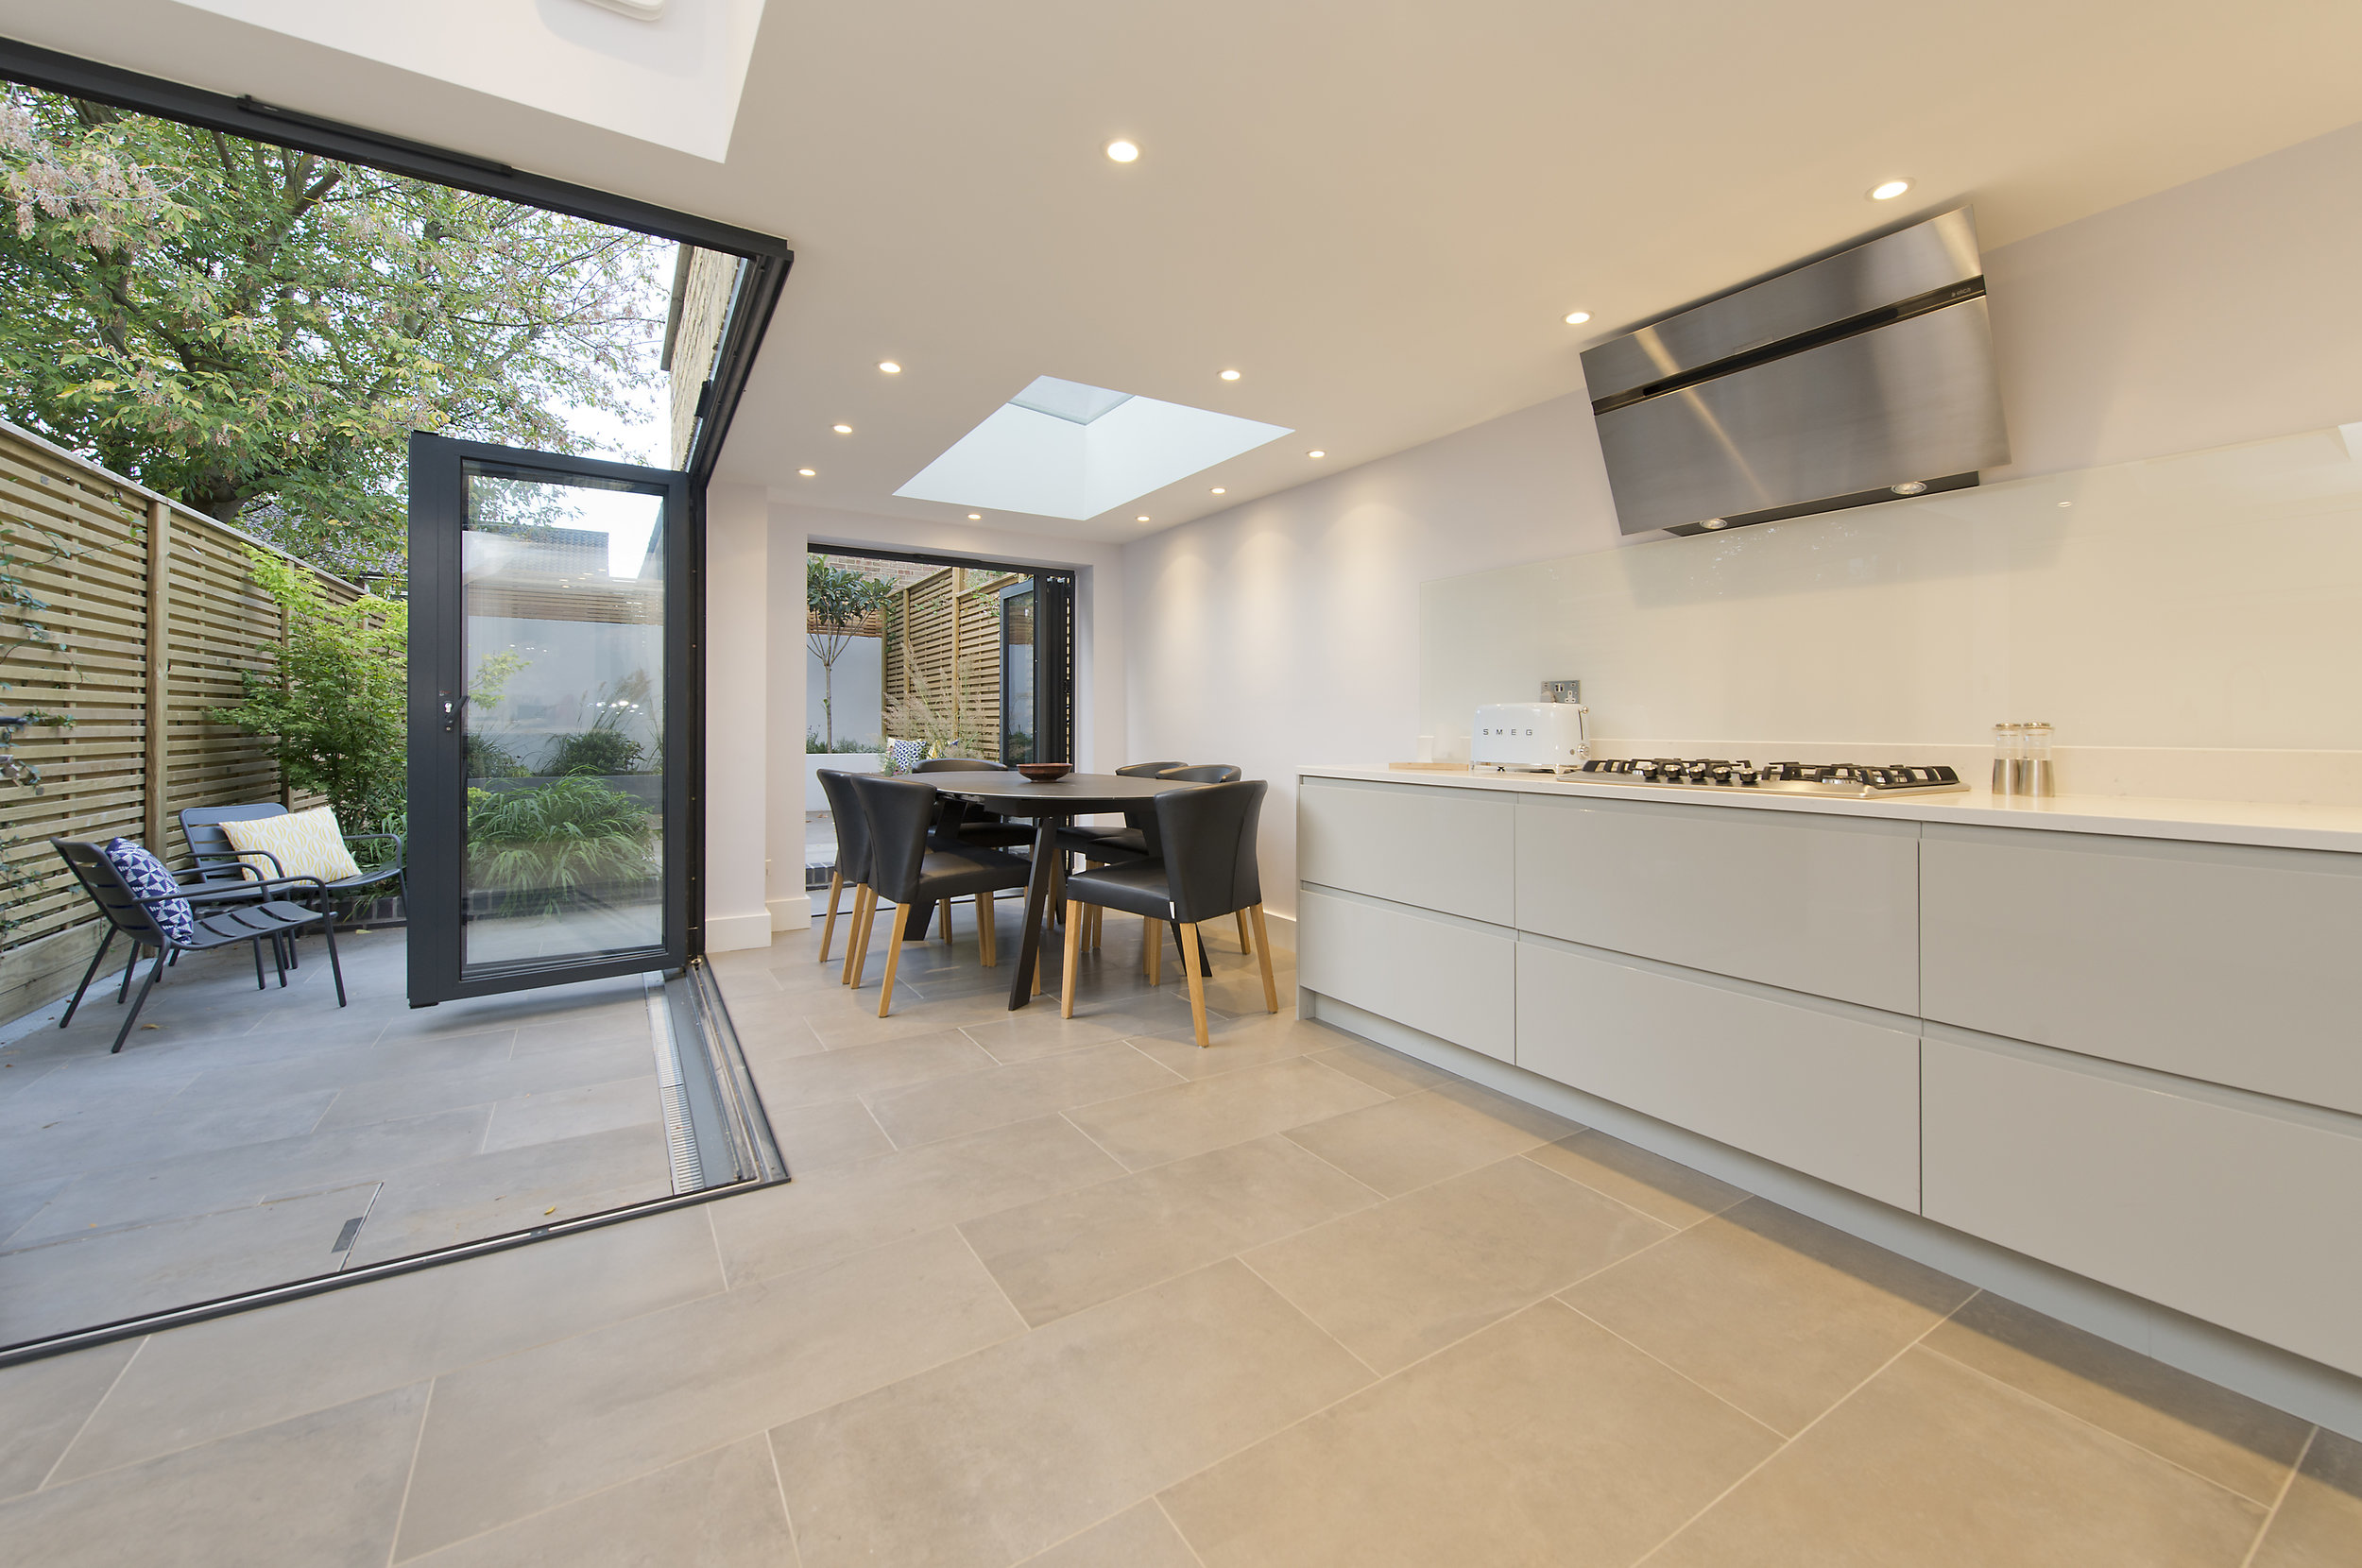 Outdoor, indoor living extension Chiswick, The Kitchen and Loft Company